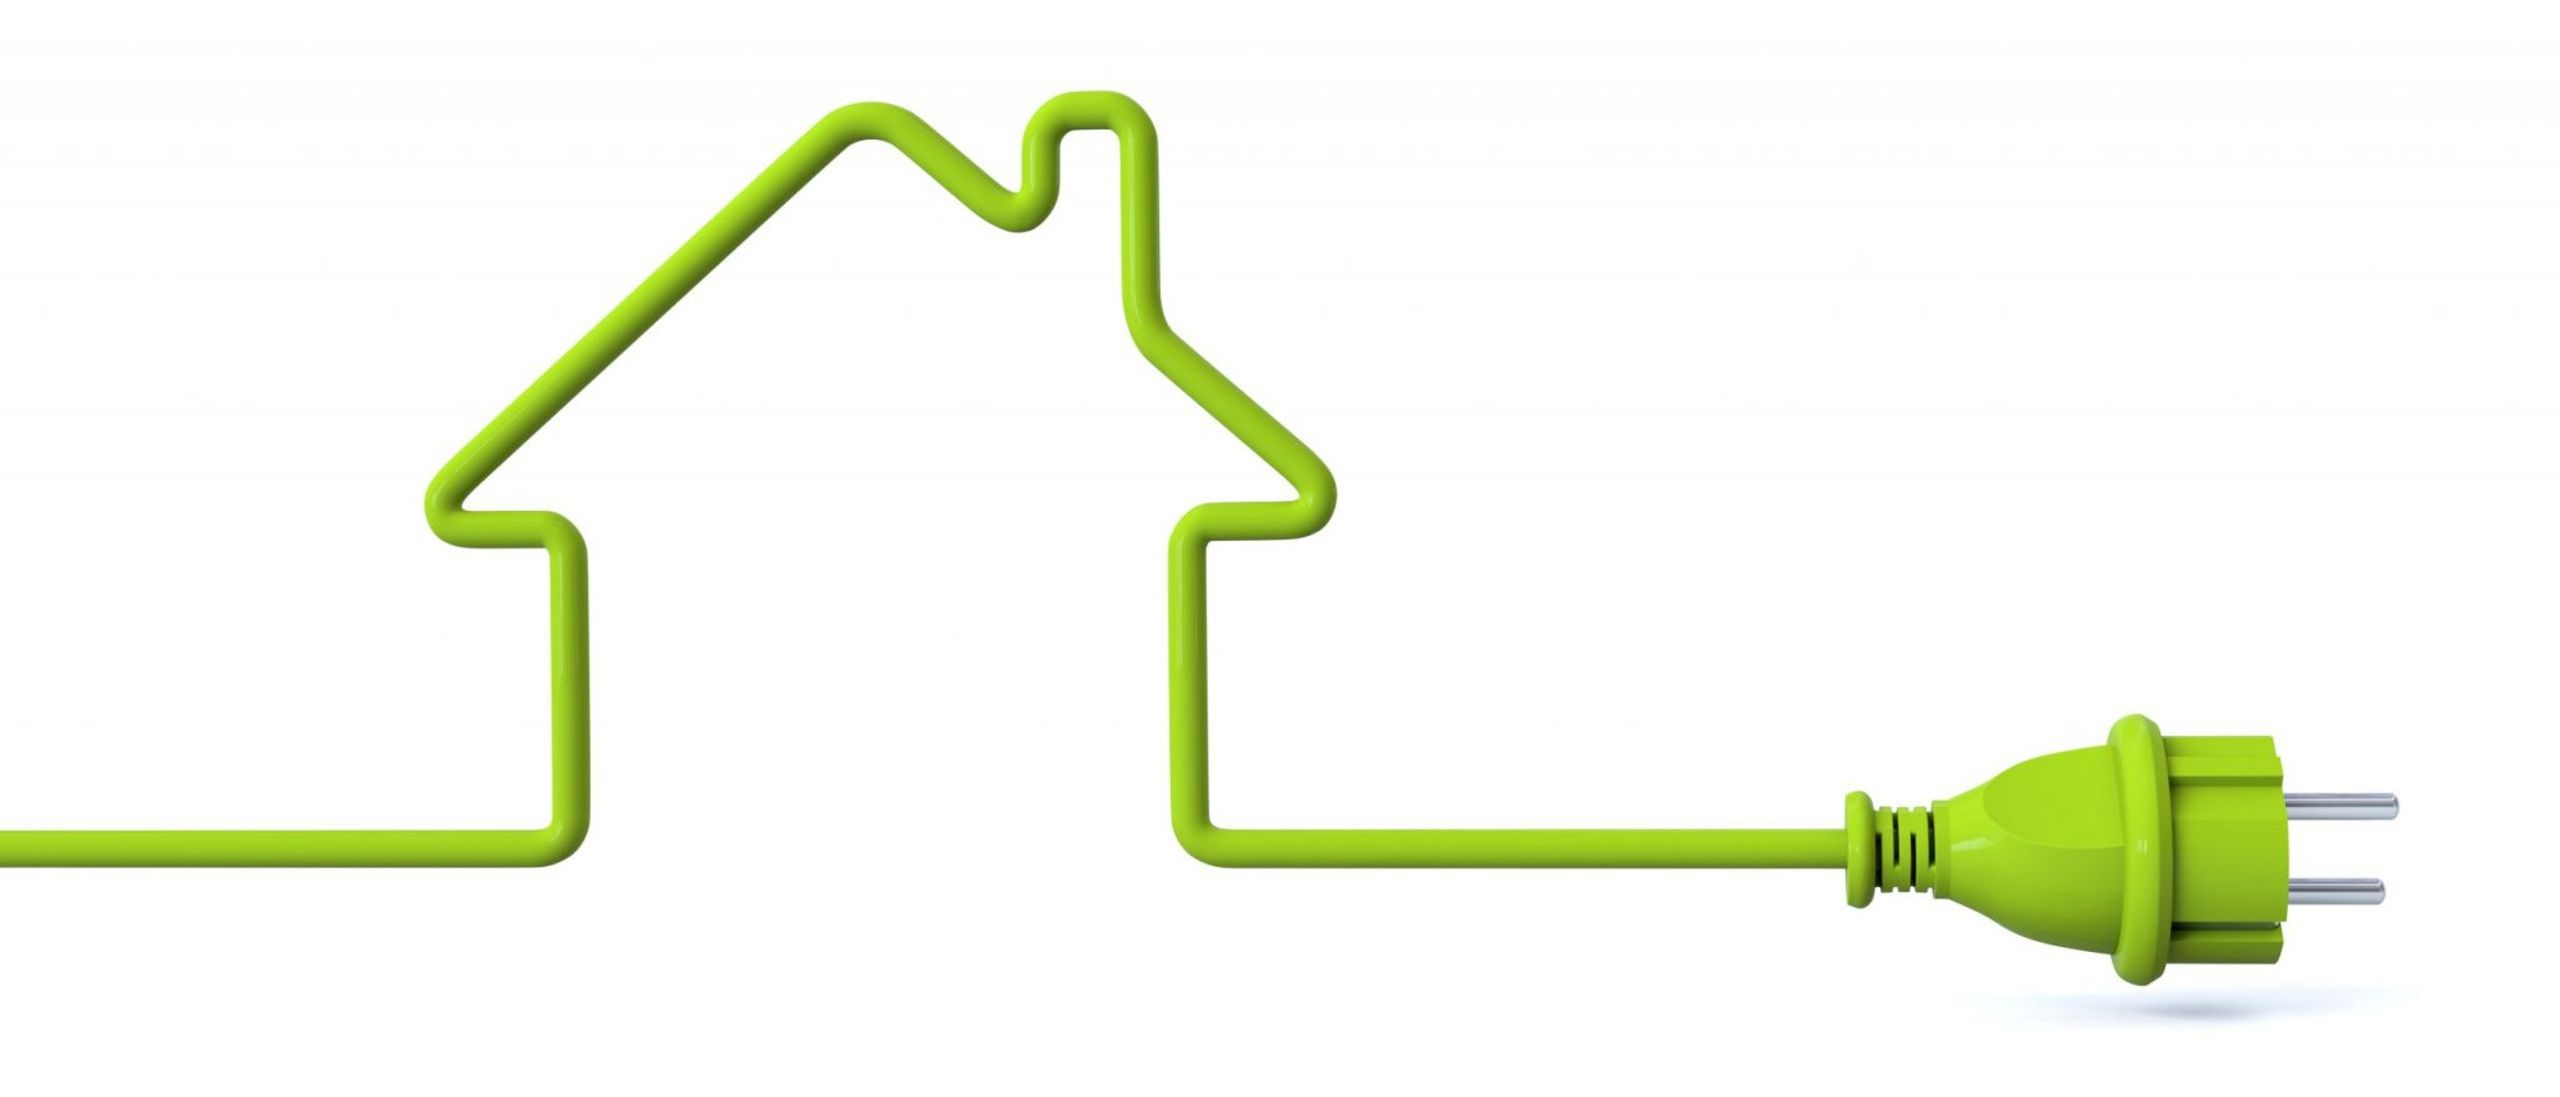 Green power plug in shape of house